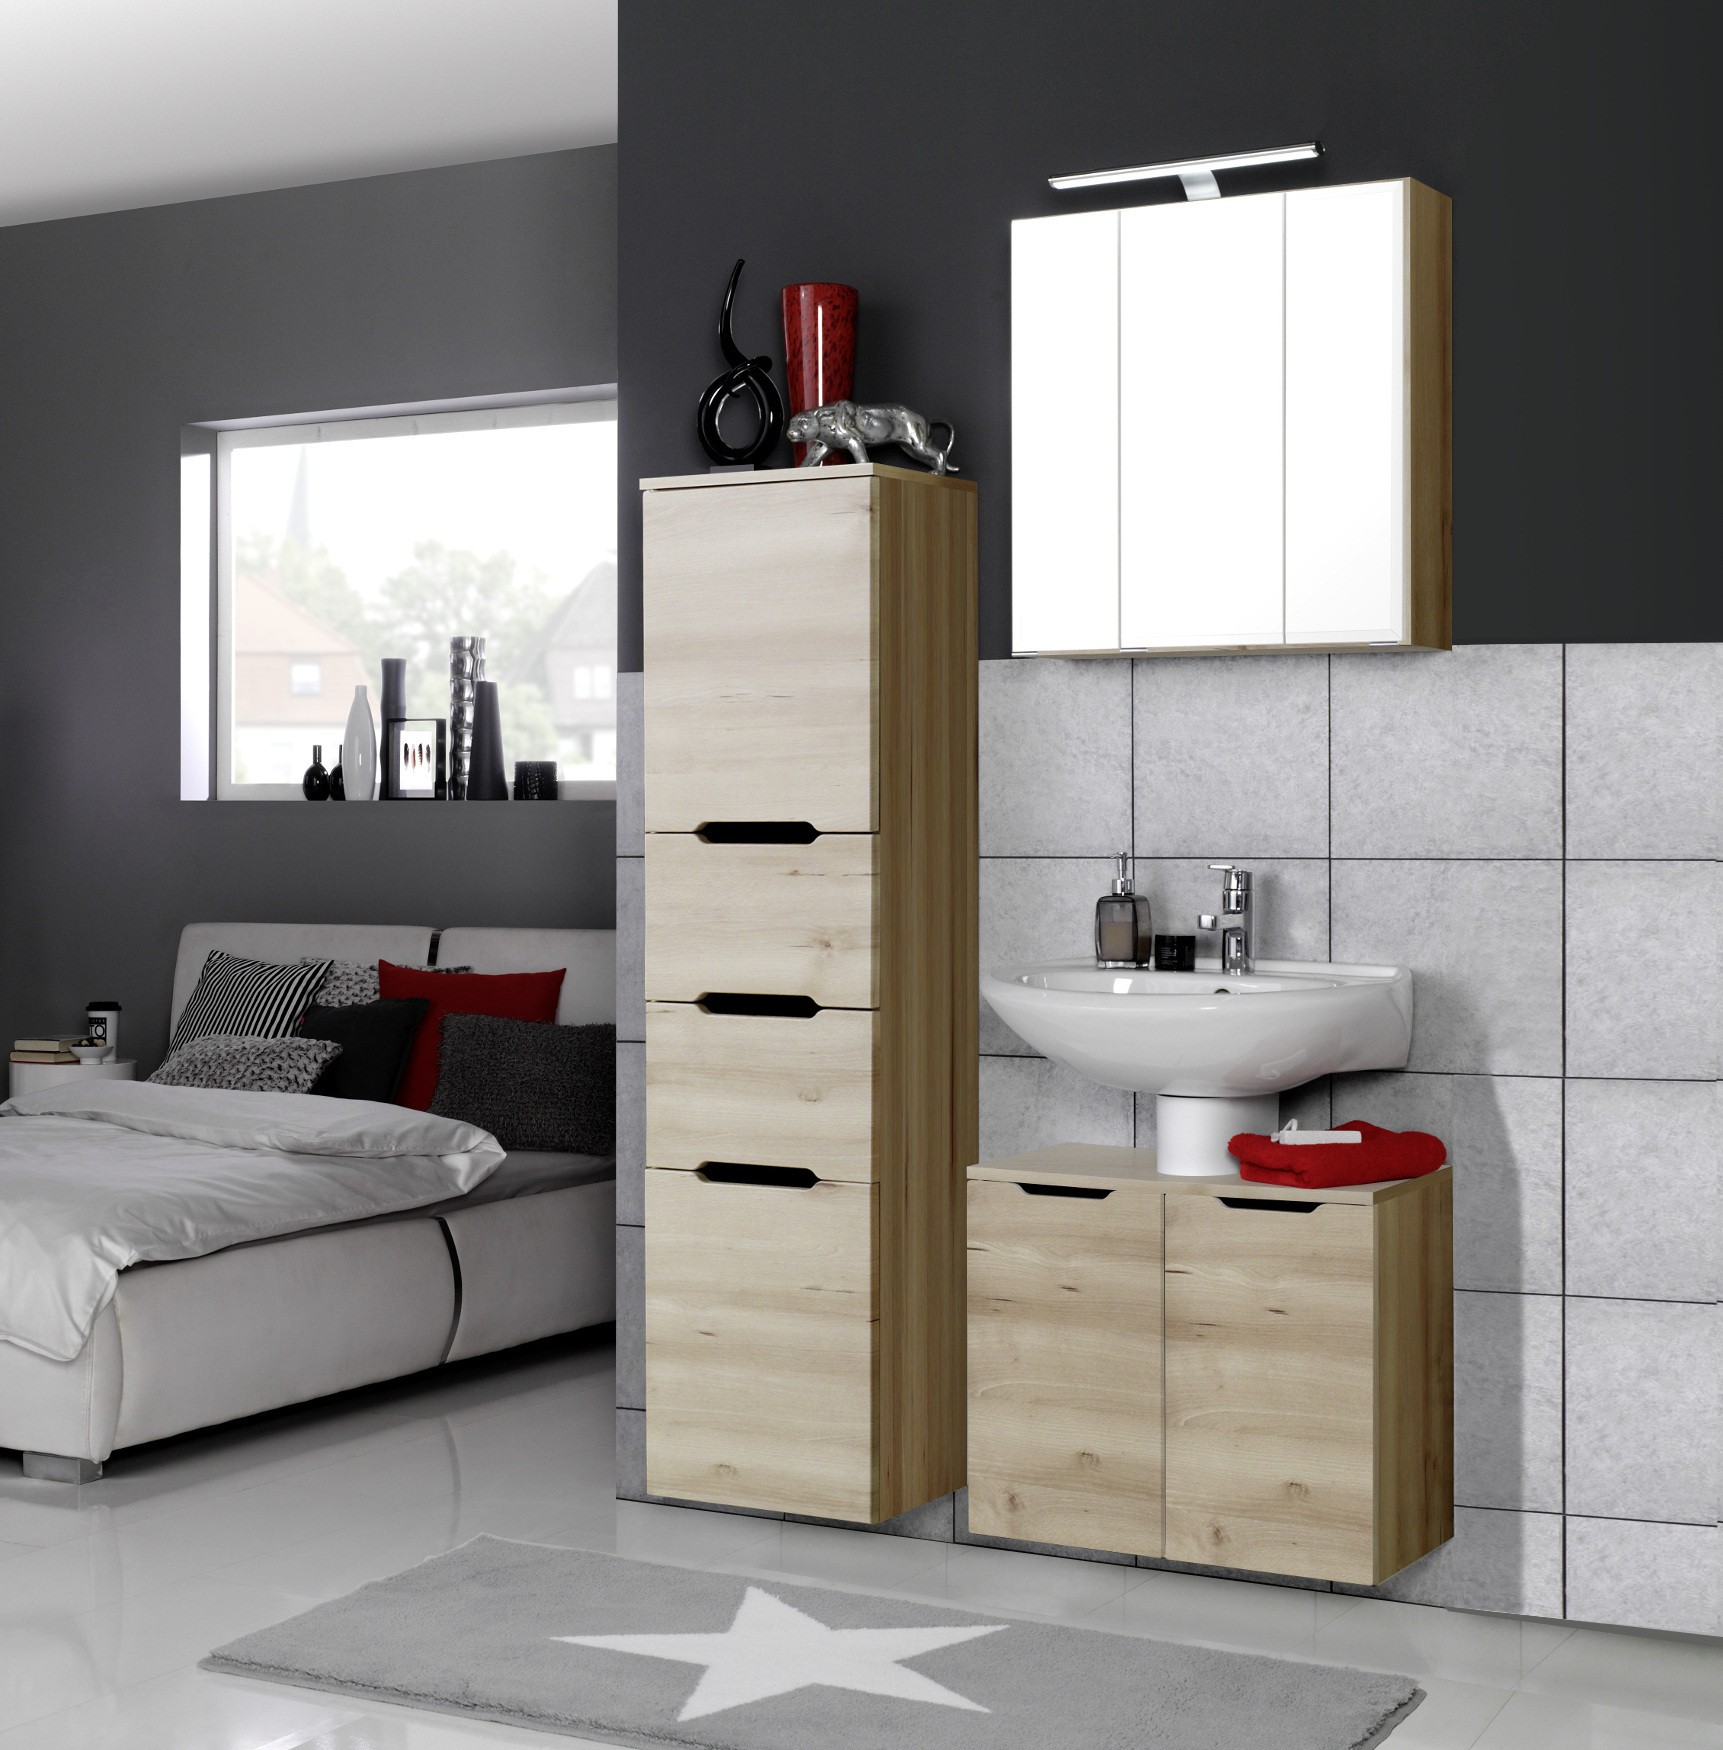 badm bel set belluno 4 teilig 100 cm breit buche. Black Bedroom Furniture Sets. Home Design Ideas